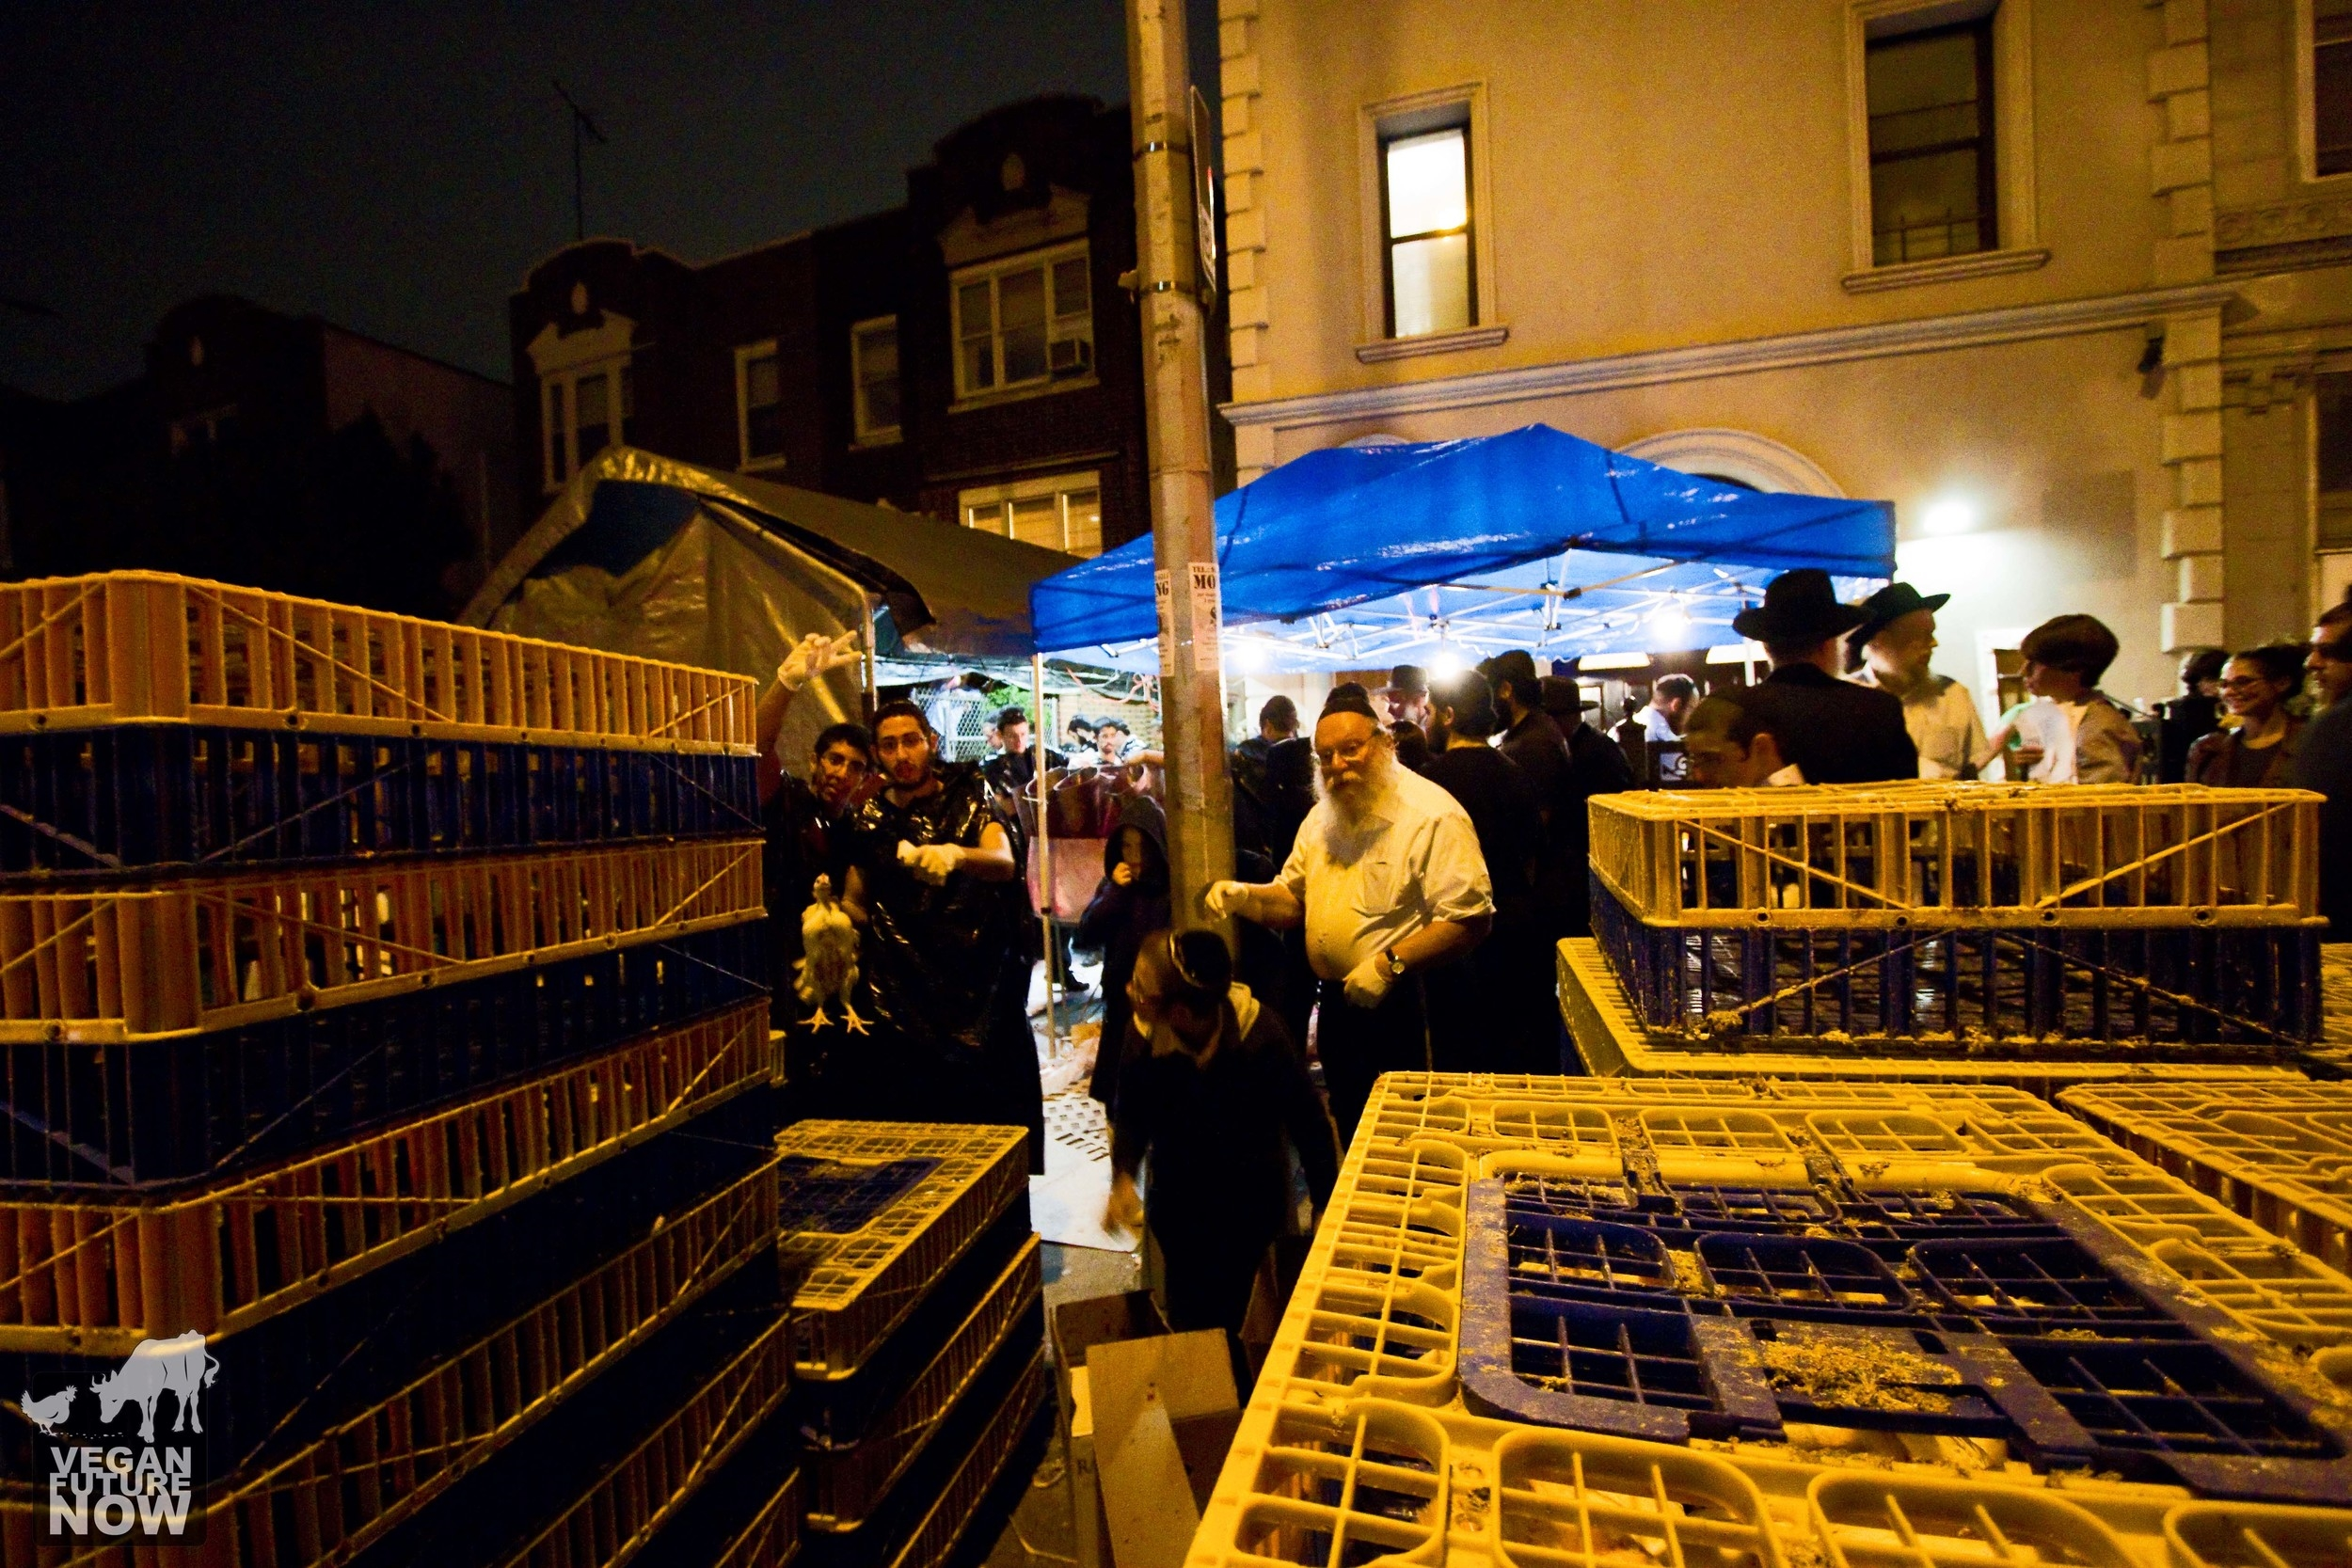 Dozens of large plastic crates, each containing several live chickens, are stacked on the street in front of the make-shift abattoir.